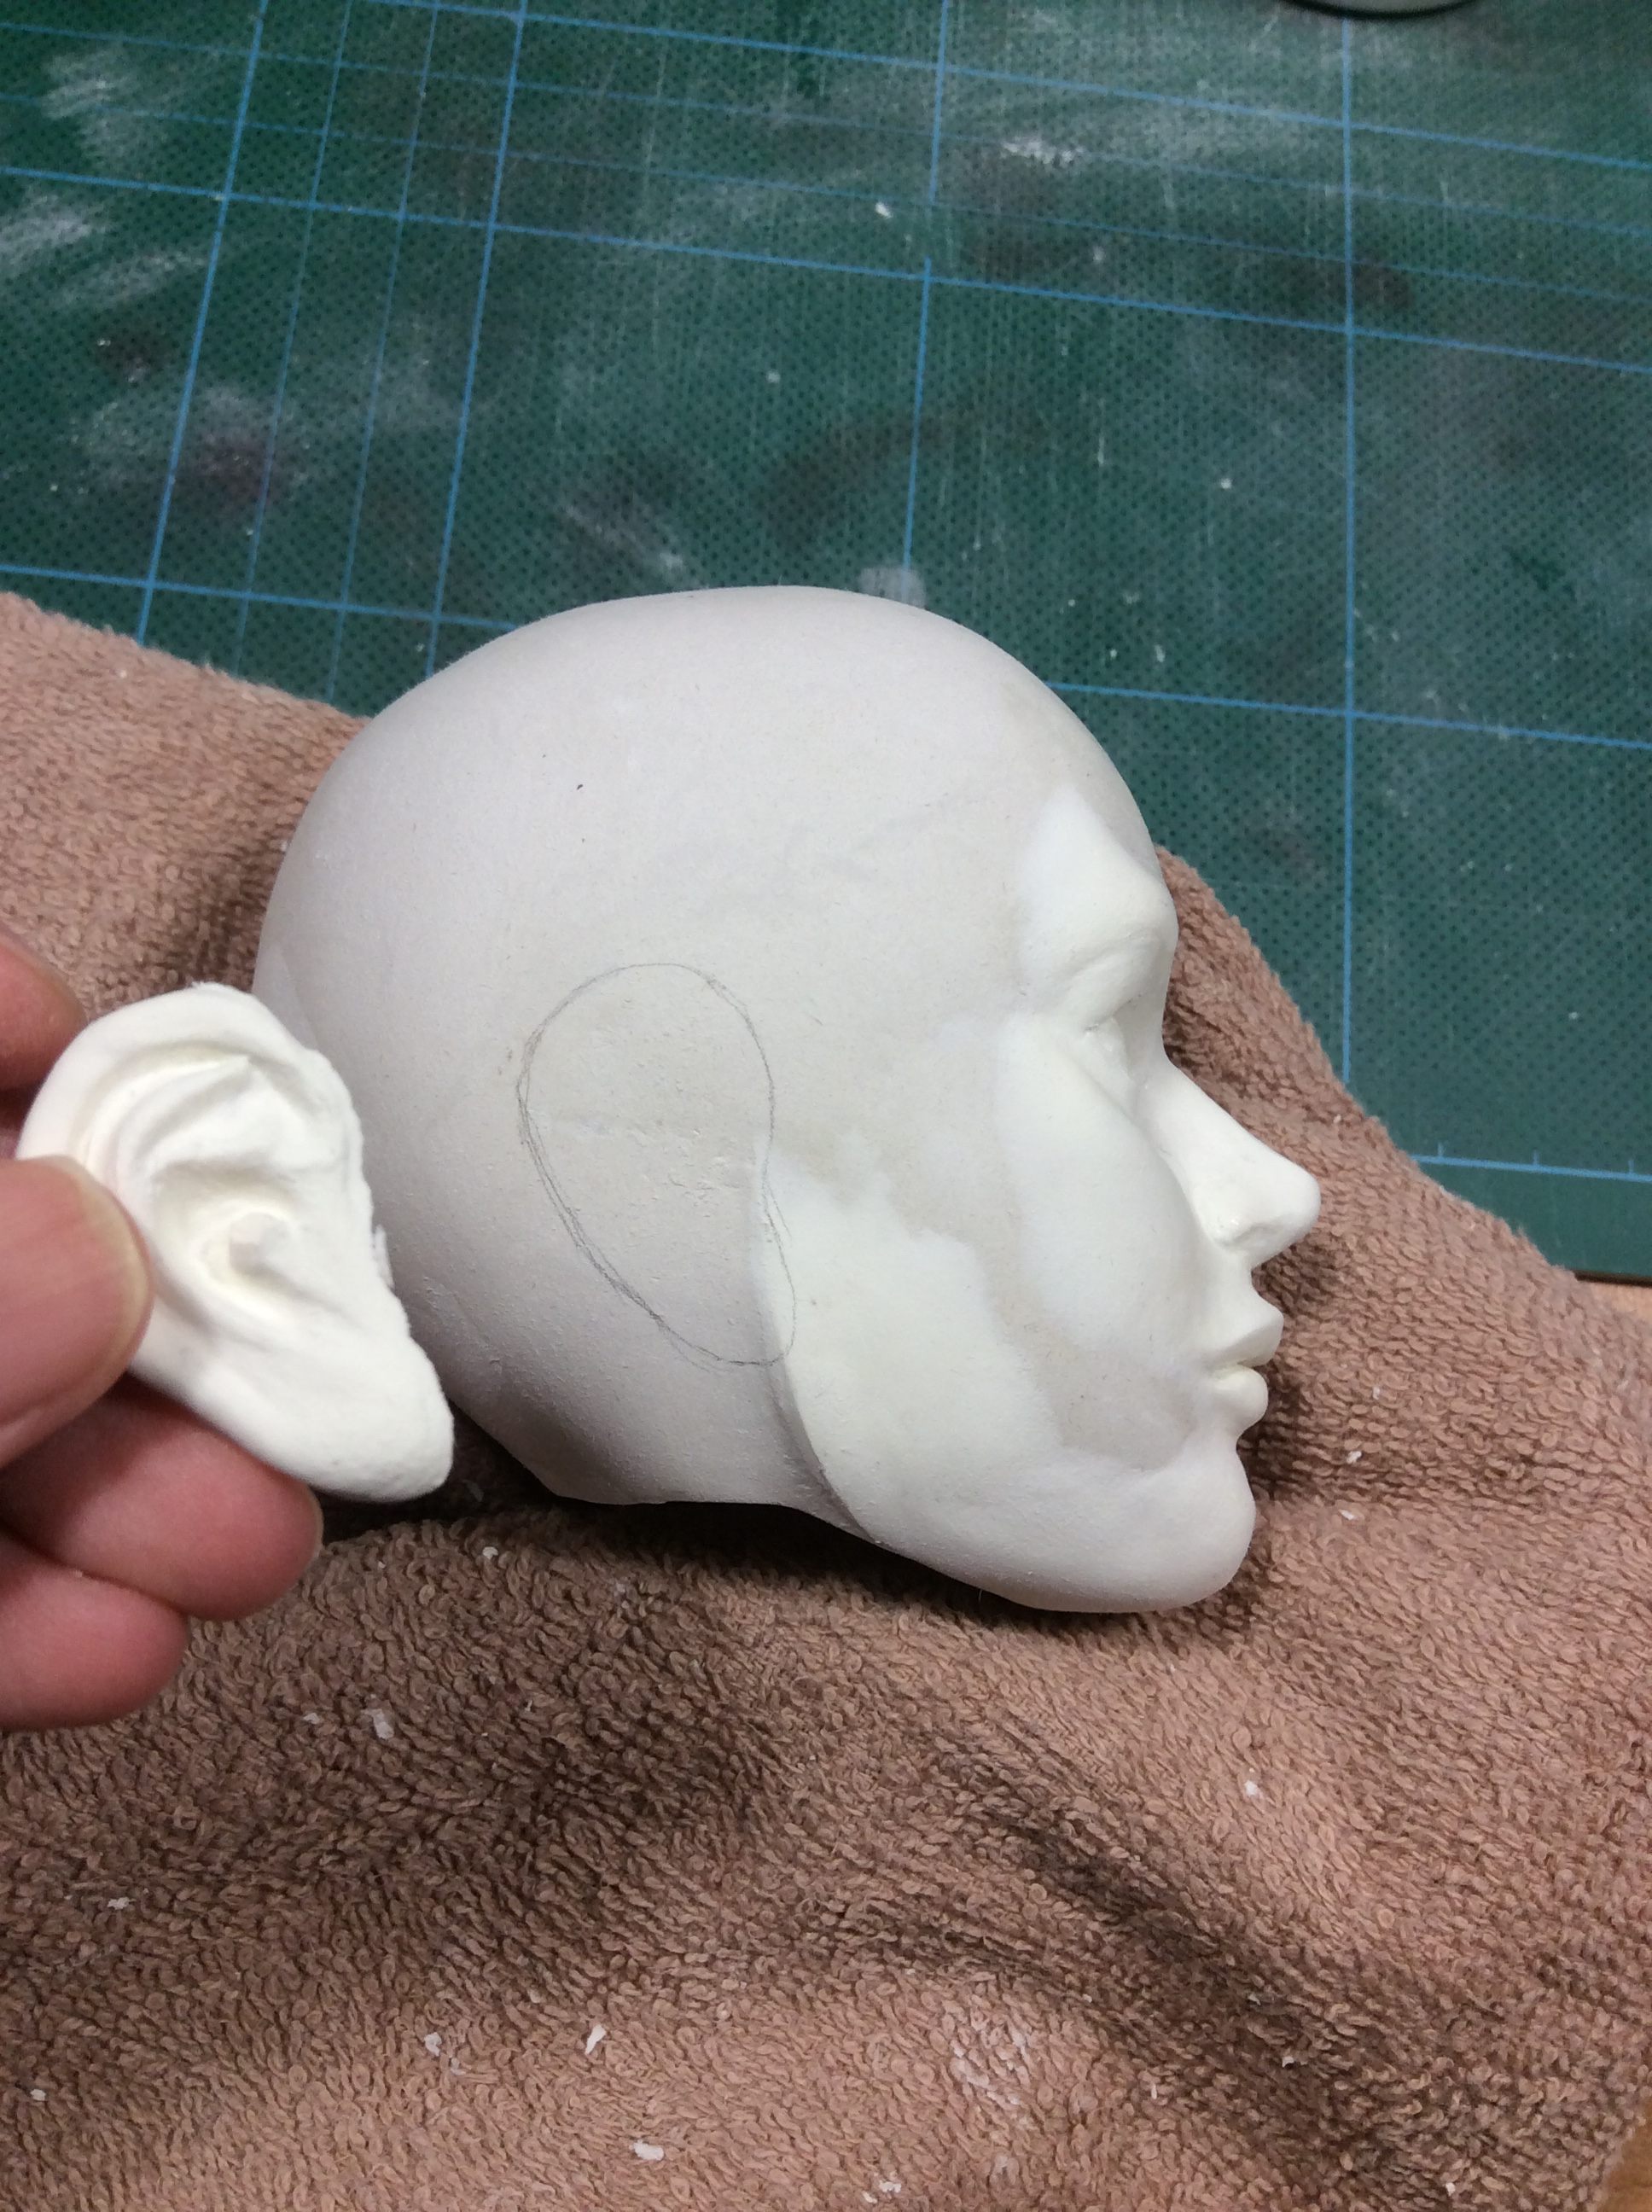 jemse---my-first-doll-head-making-progress-diary-part-3_32293338891_o